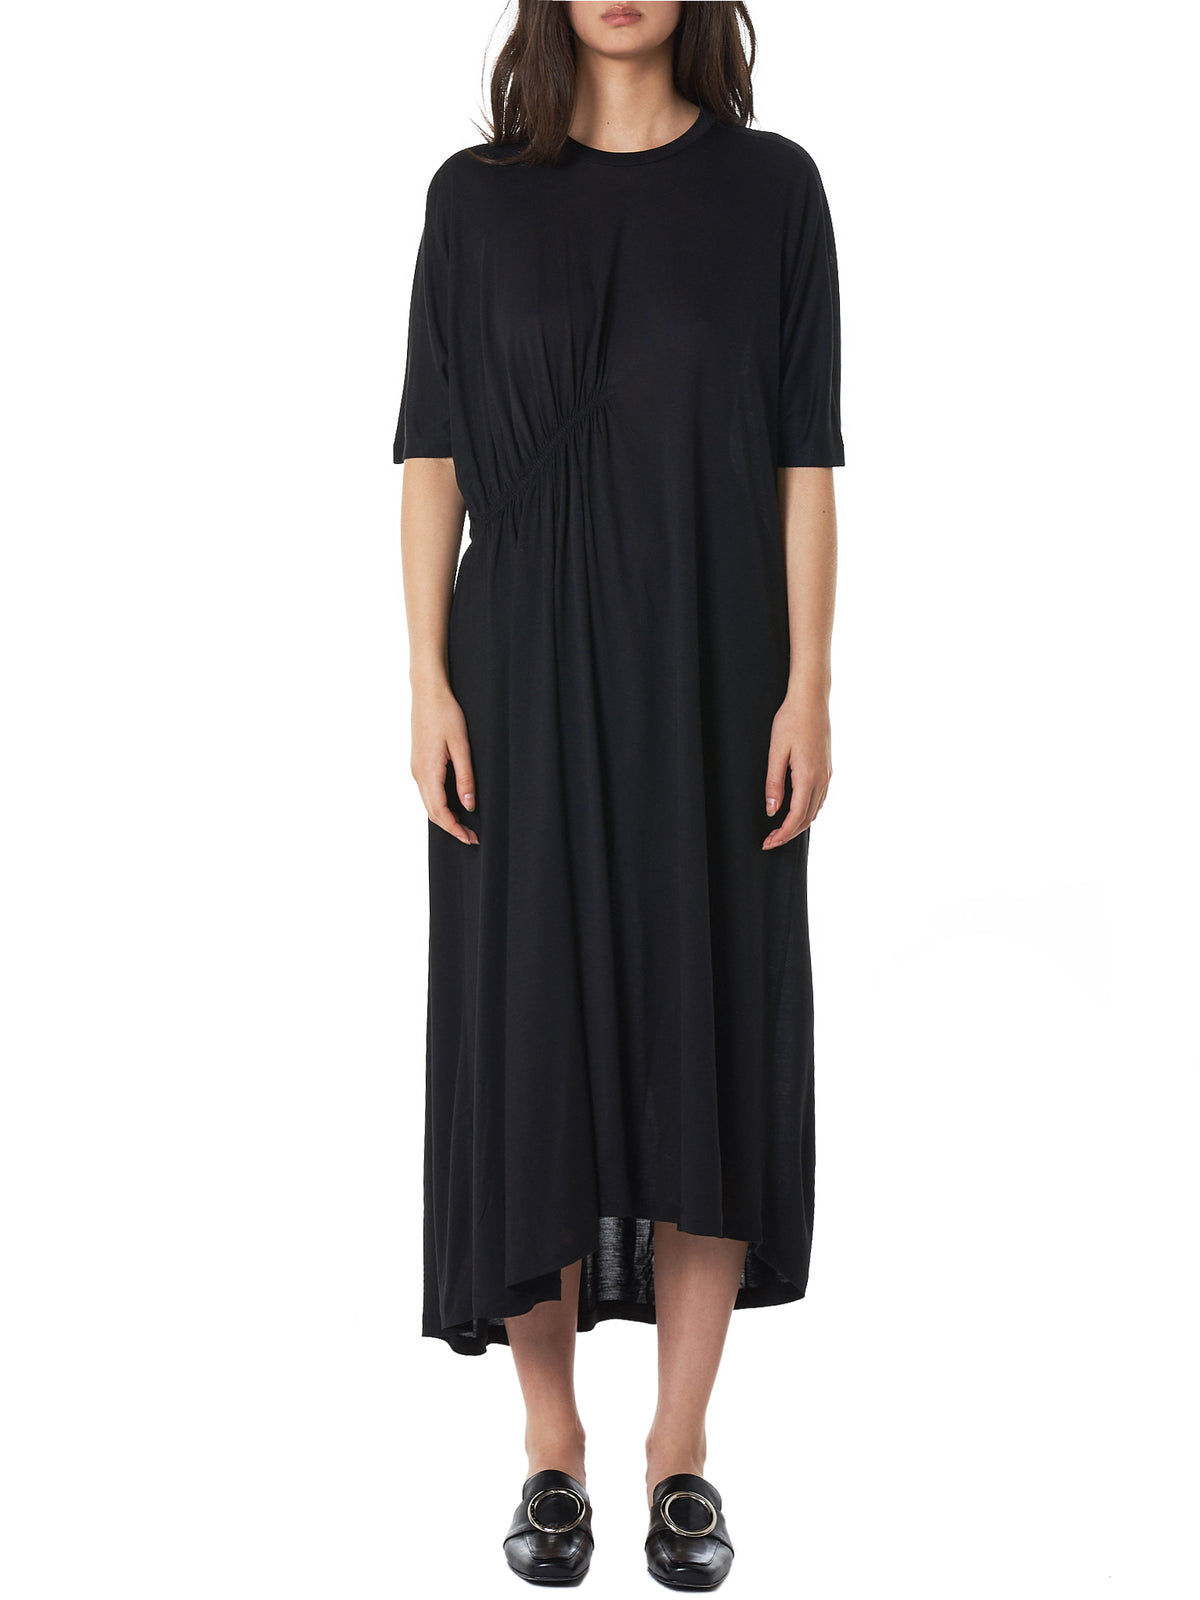 Henrik Vibskov Dress - Hlorenzo Front